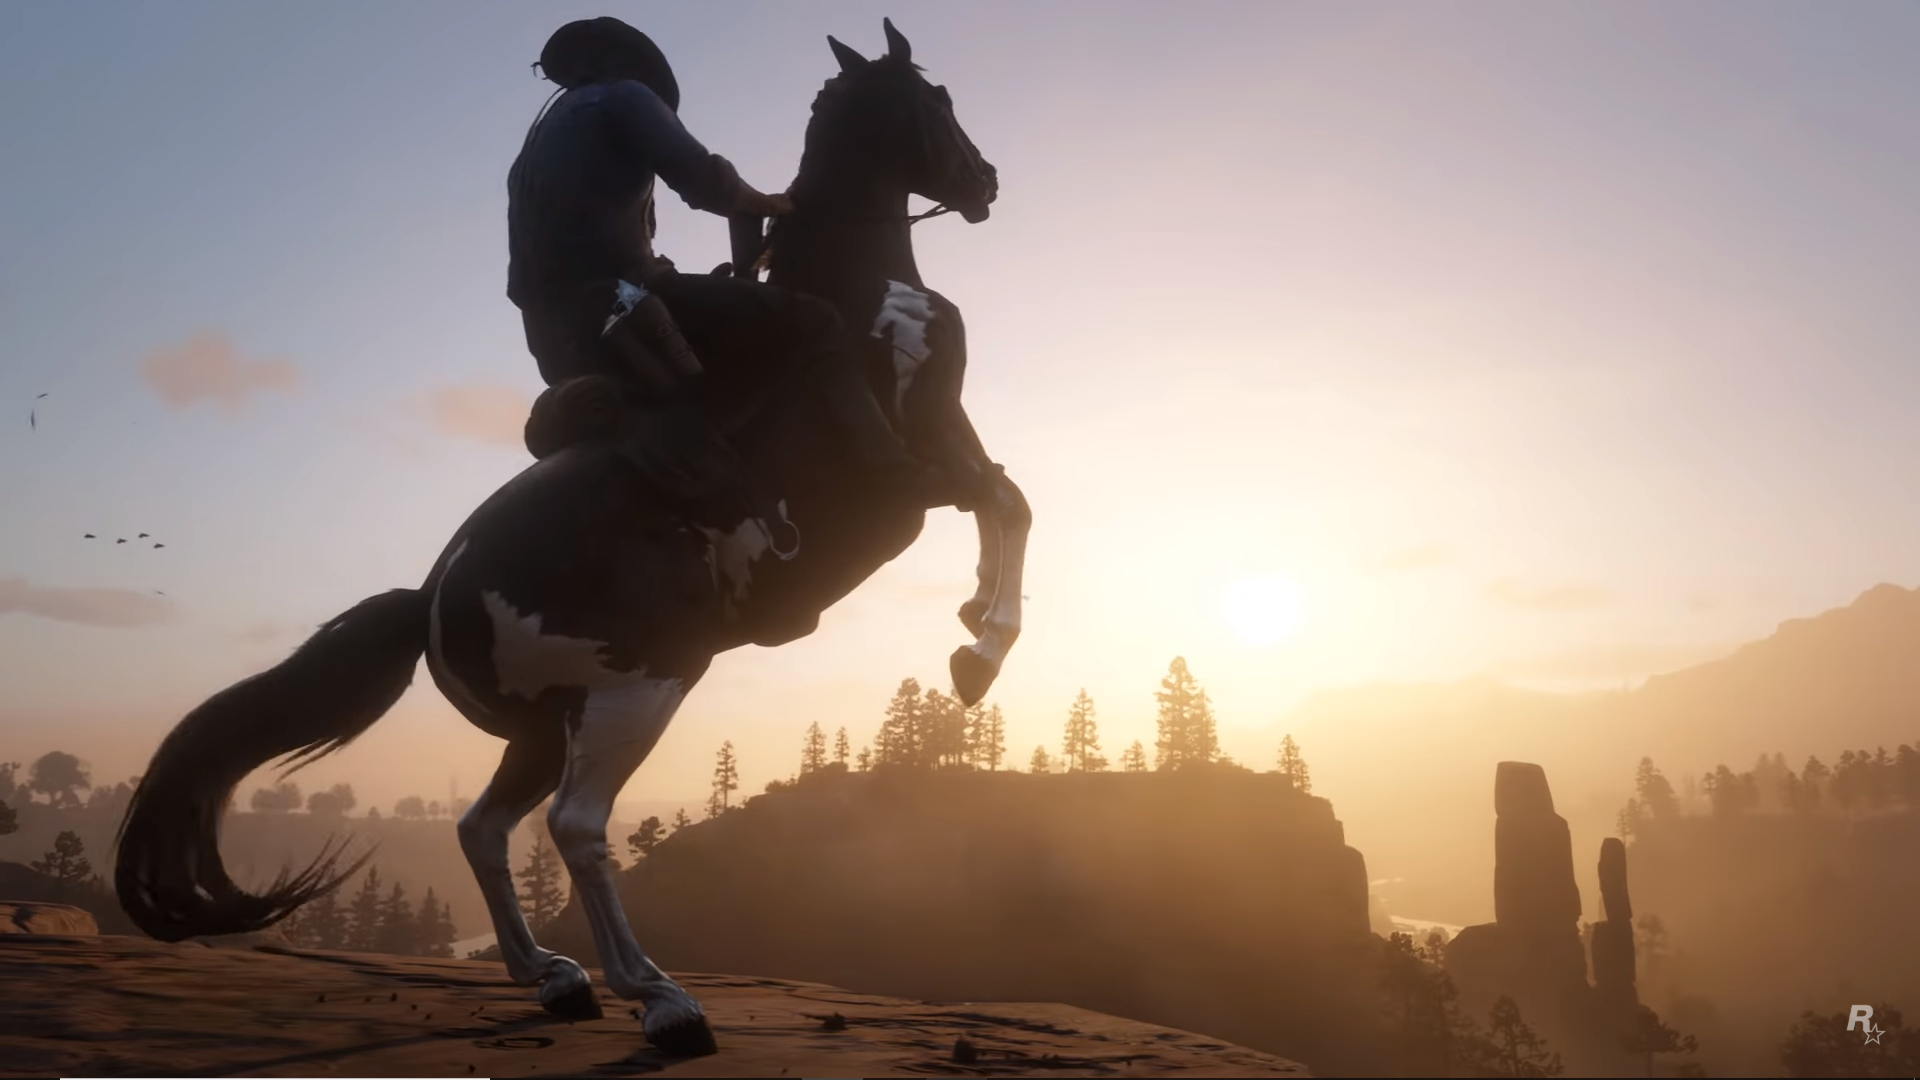 Rockstar Red Dead Redemption 2 Tips and Tricks